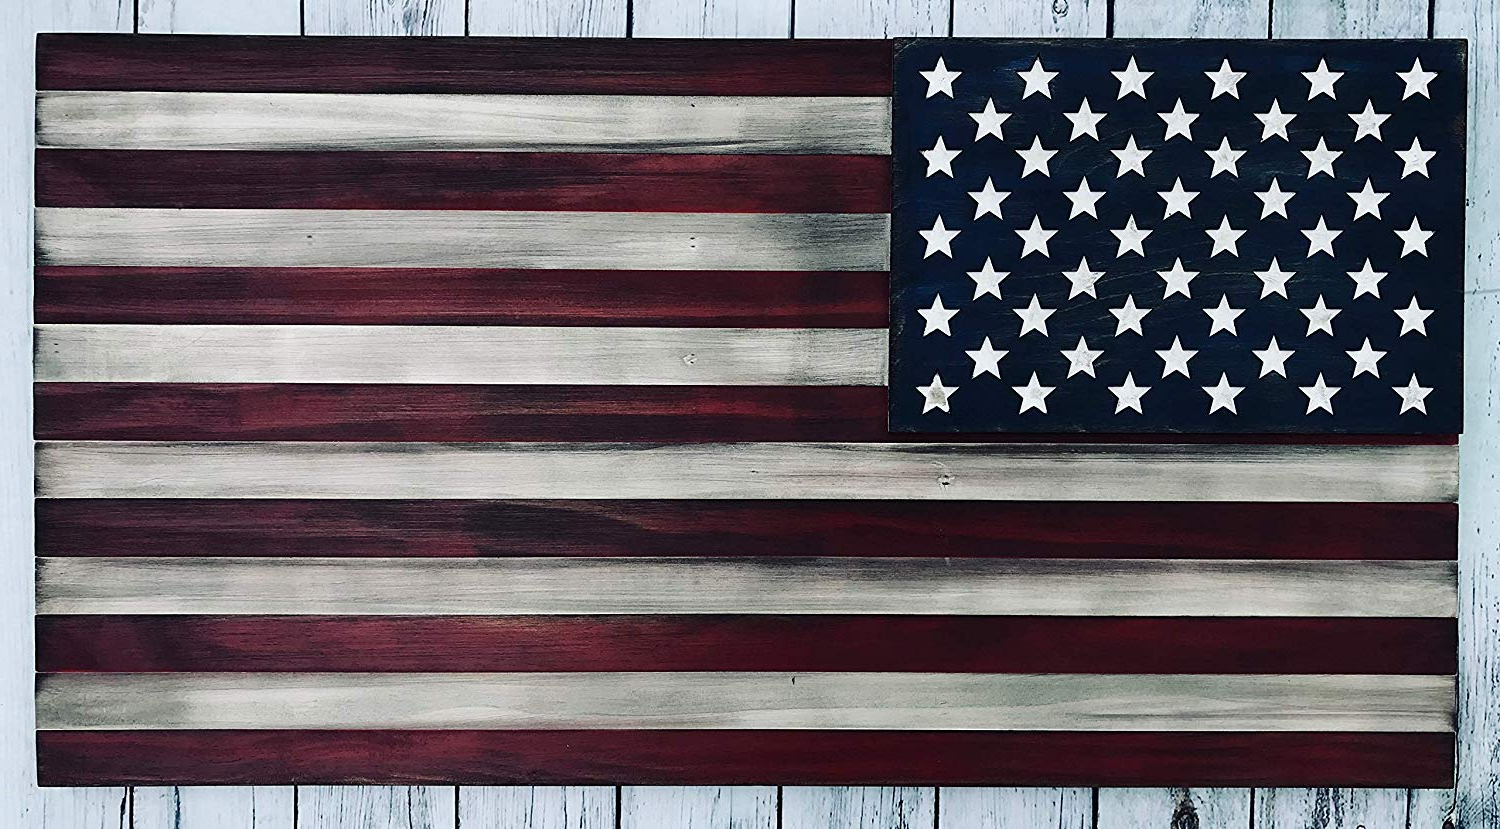 Widely Used American Flag 3D Wall Decor In Amazon: Usa Wooden Flag, Wooden American Flag Wall Decor (View 19 of 20)